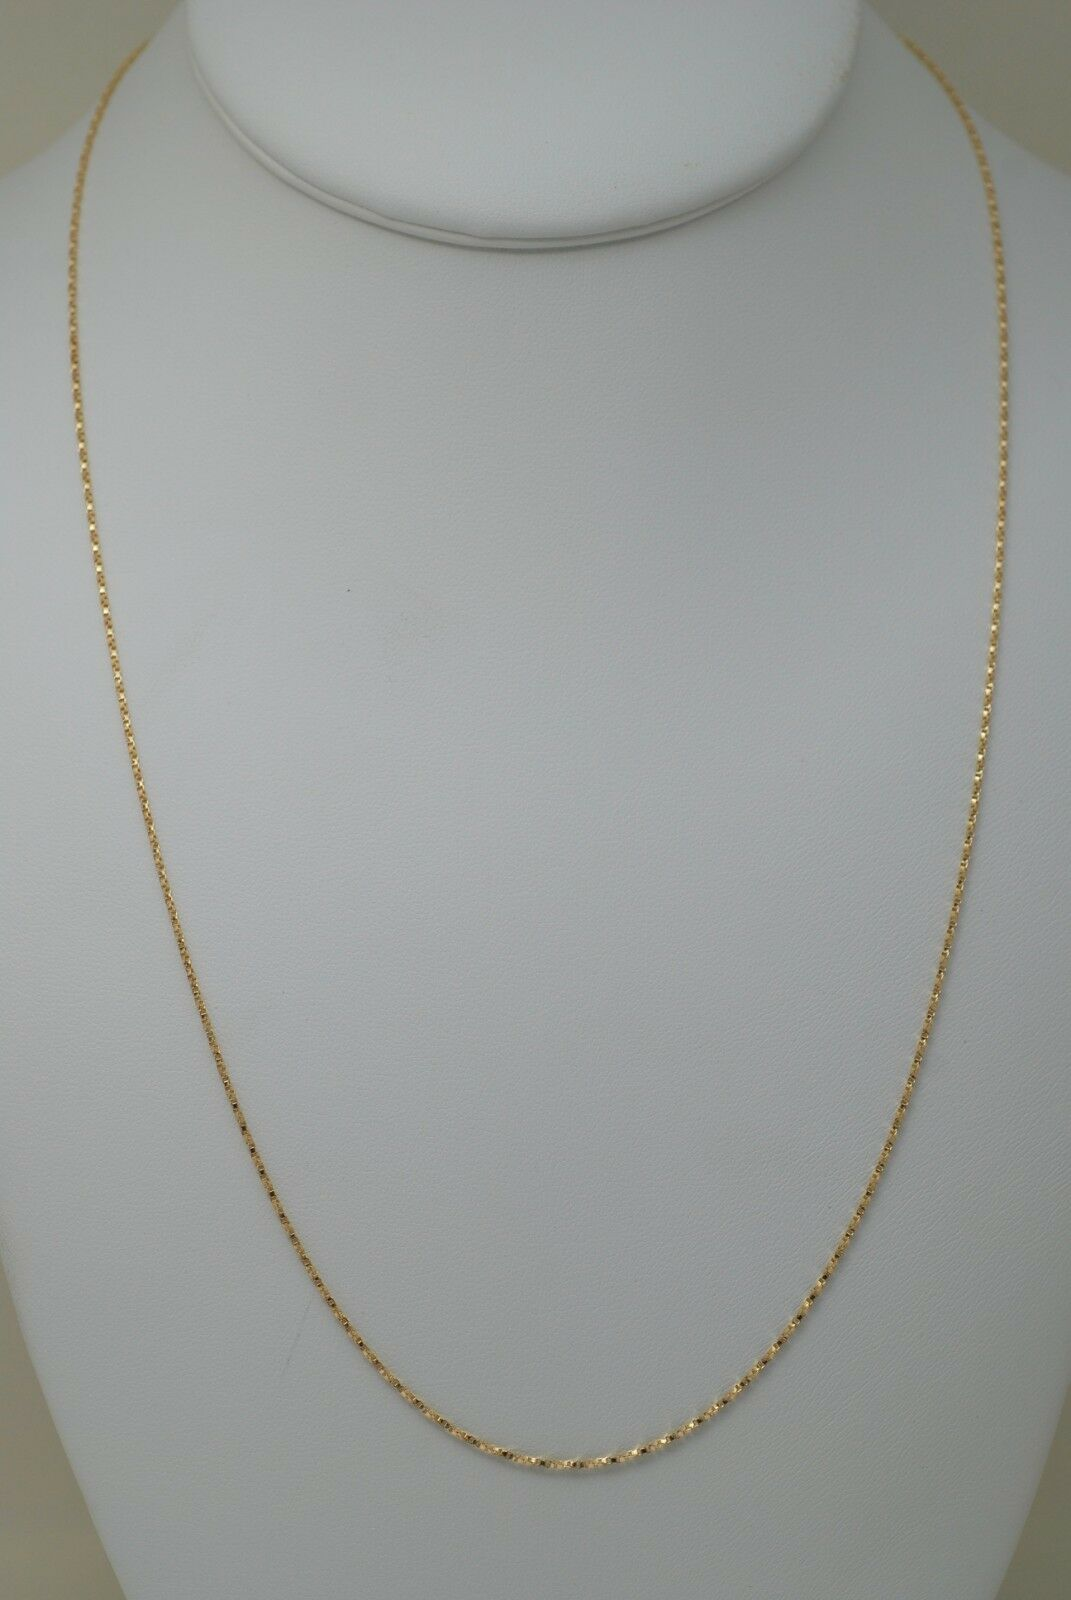 10K gold 22 inches twisted box chain